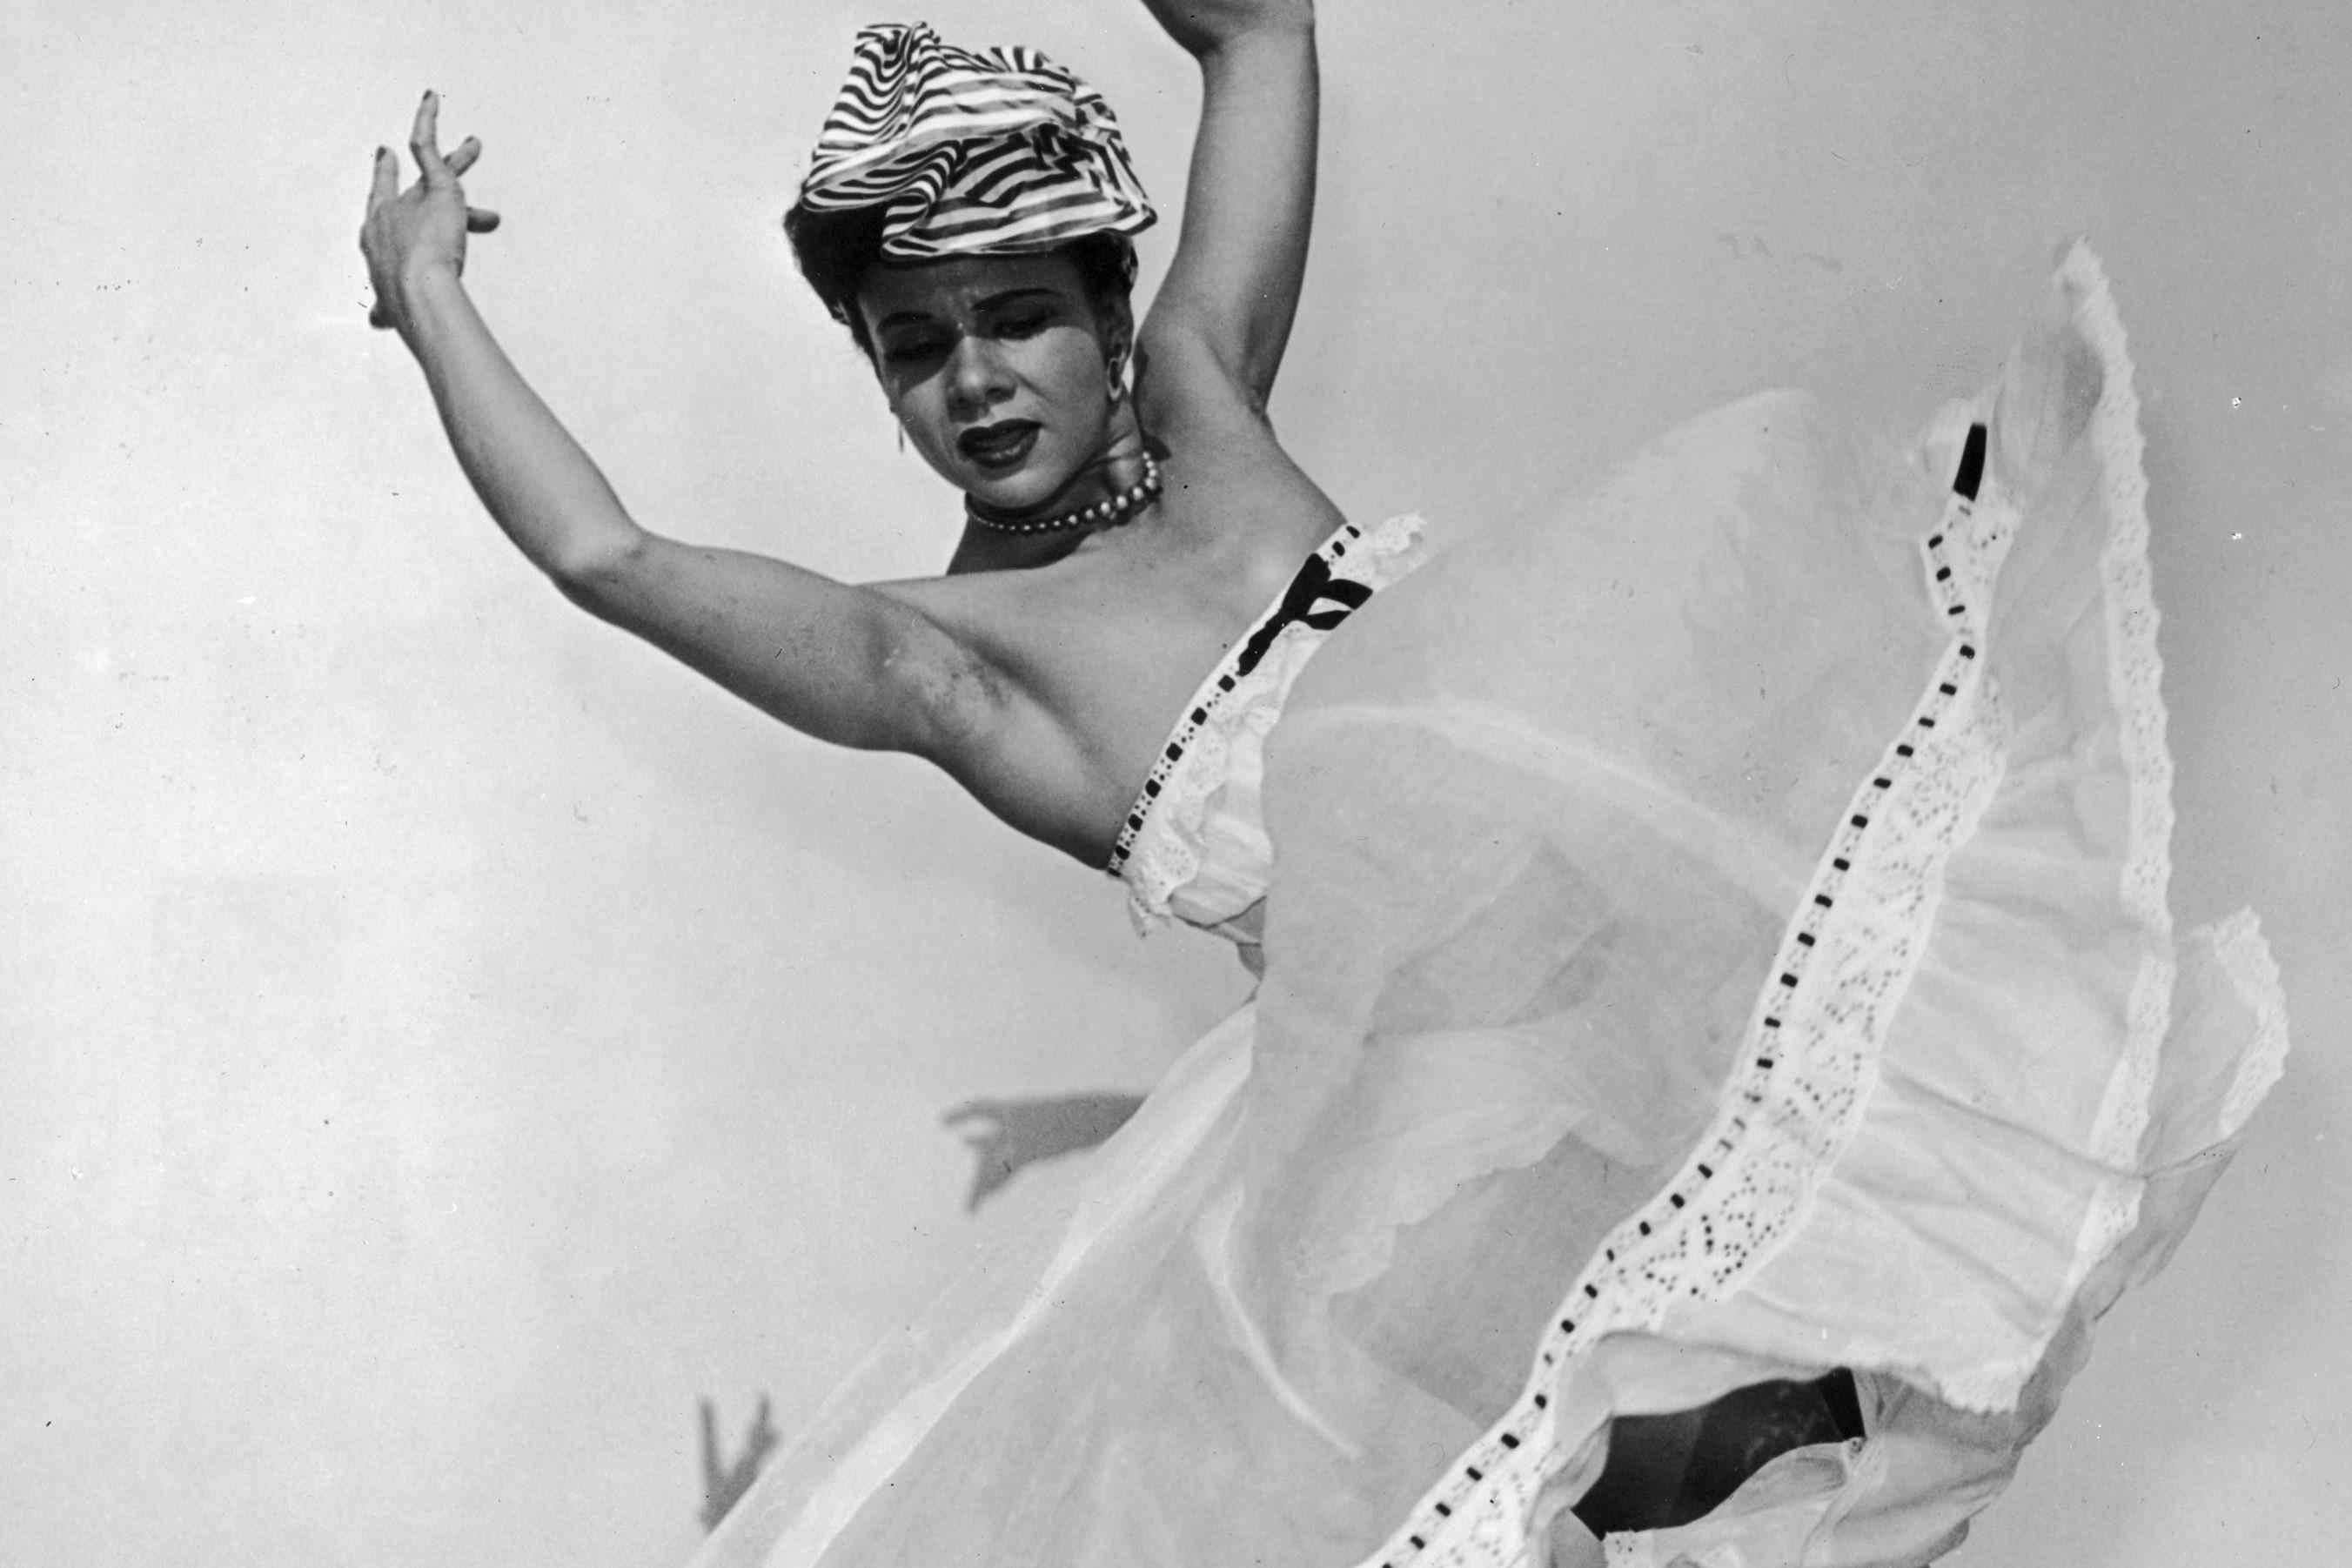 Dancer and choreographer Katherine Dunham wears a striped headdress and flowing skirt and dances with her arms above her head